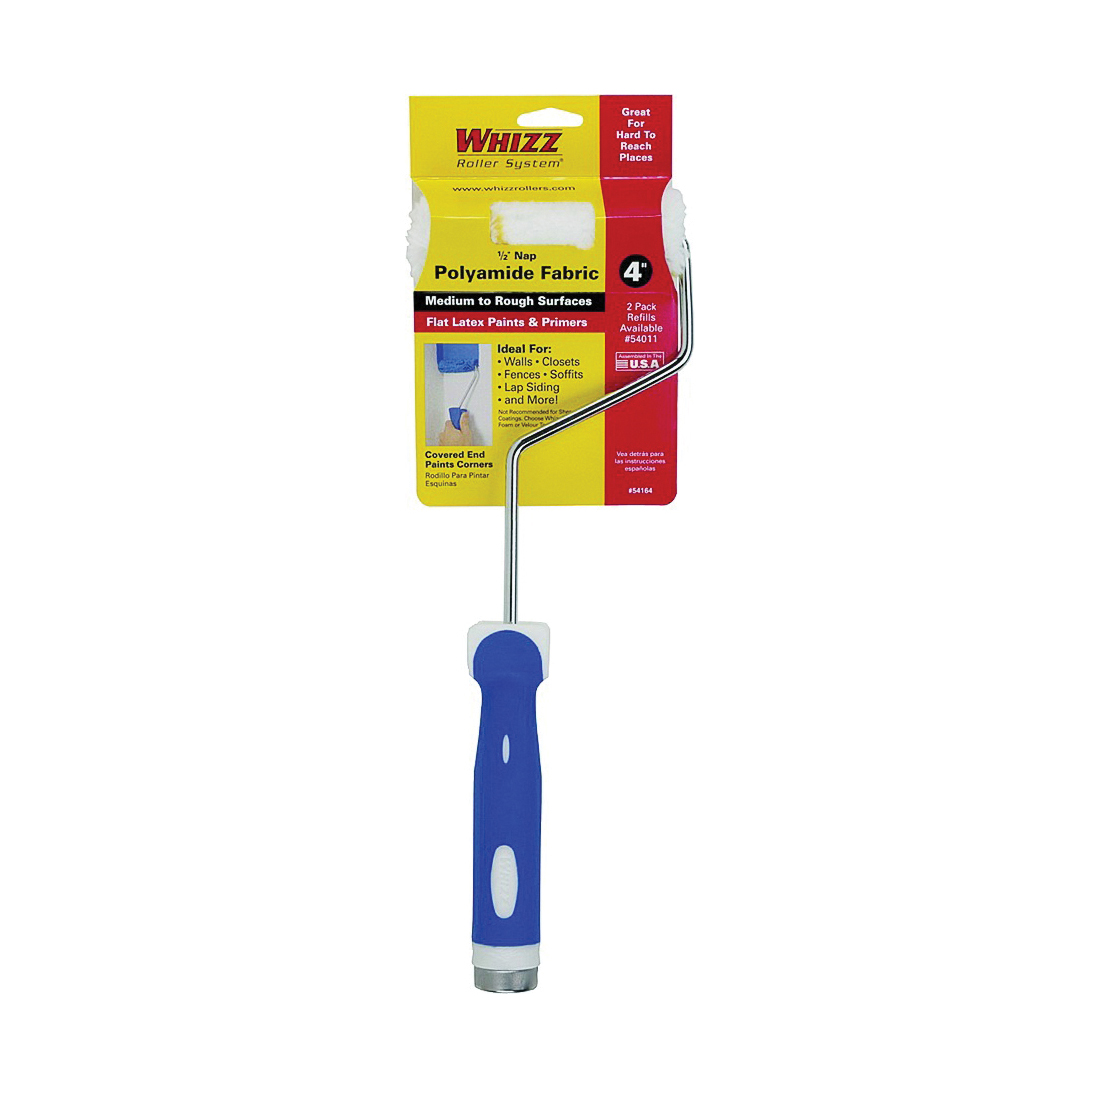 Picture of WHIZZ 54164 Mini Roller, 1/2 in Nap, Polyamide Cover, Soft Touch Handle, 4 in L Roller